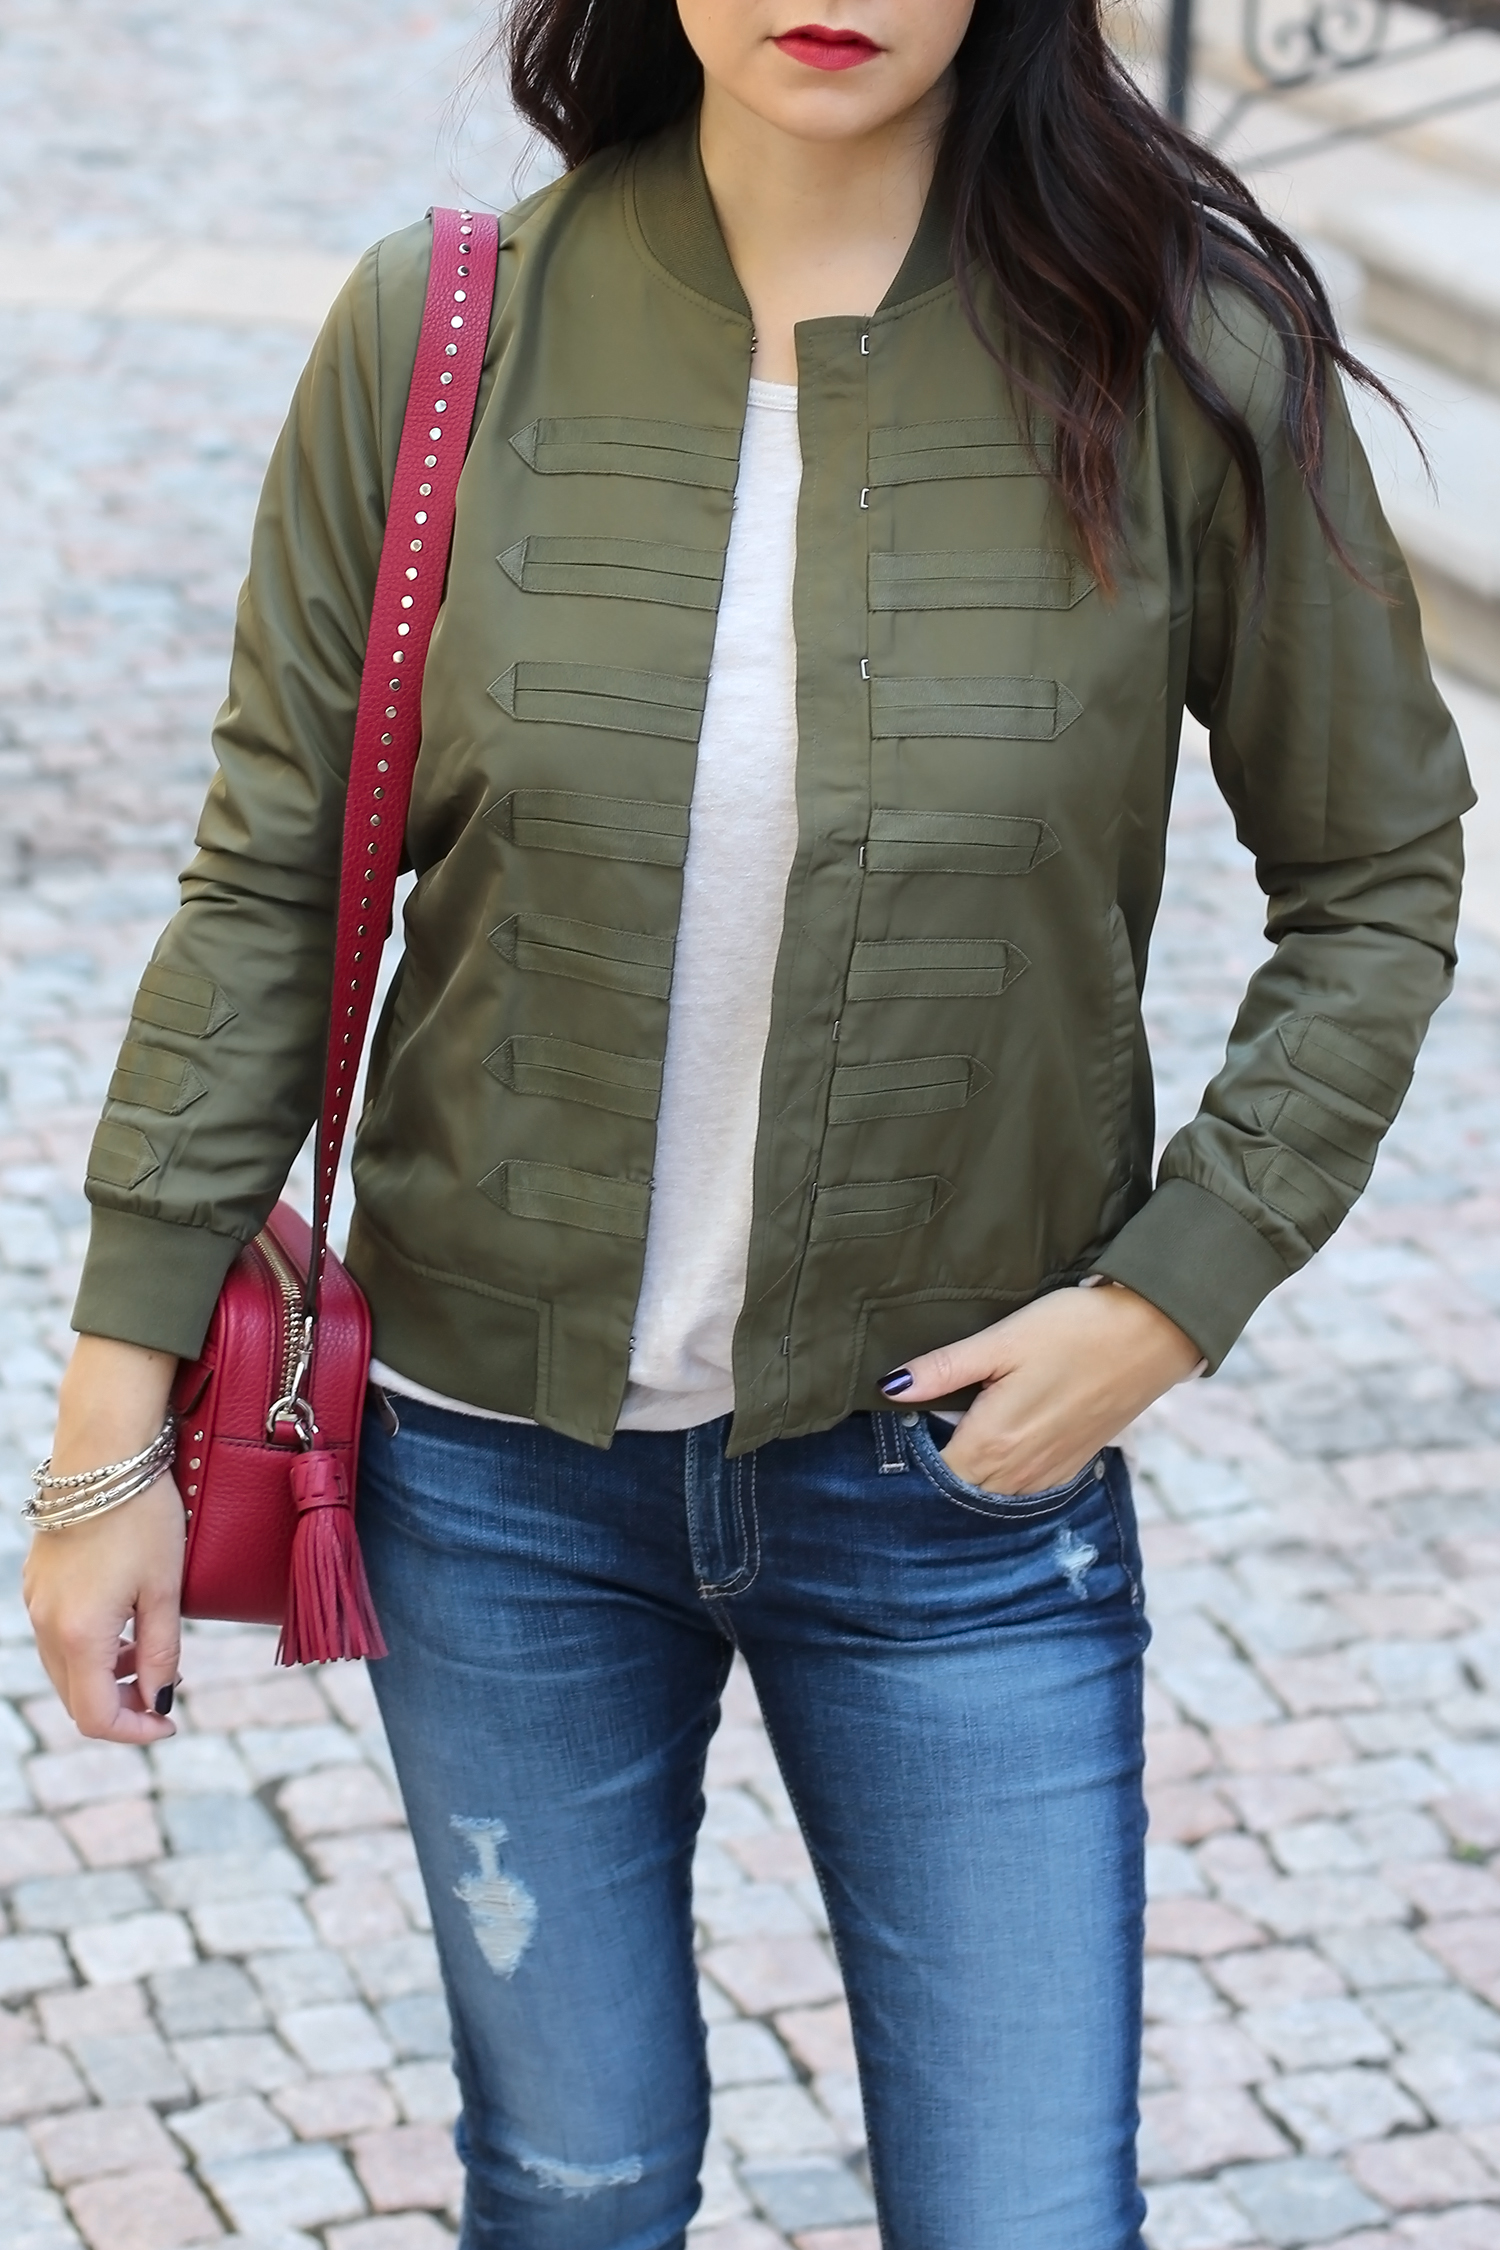 Olive Green Bomber Jacket Outfit